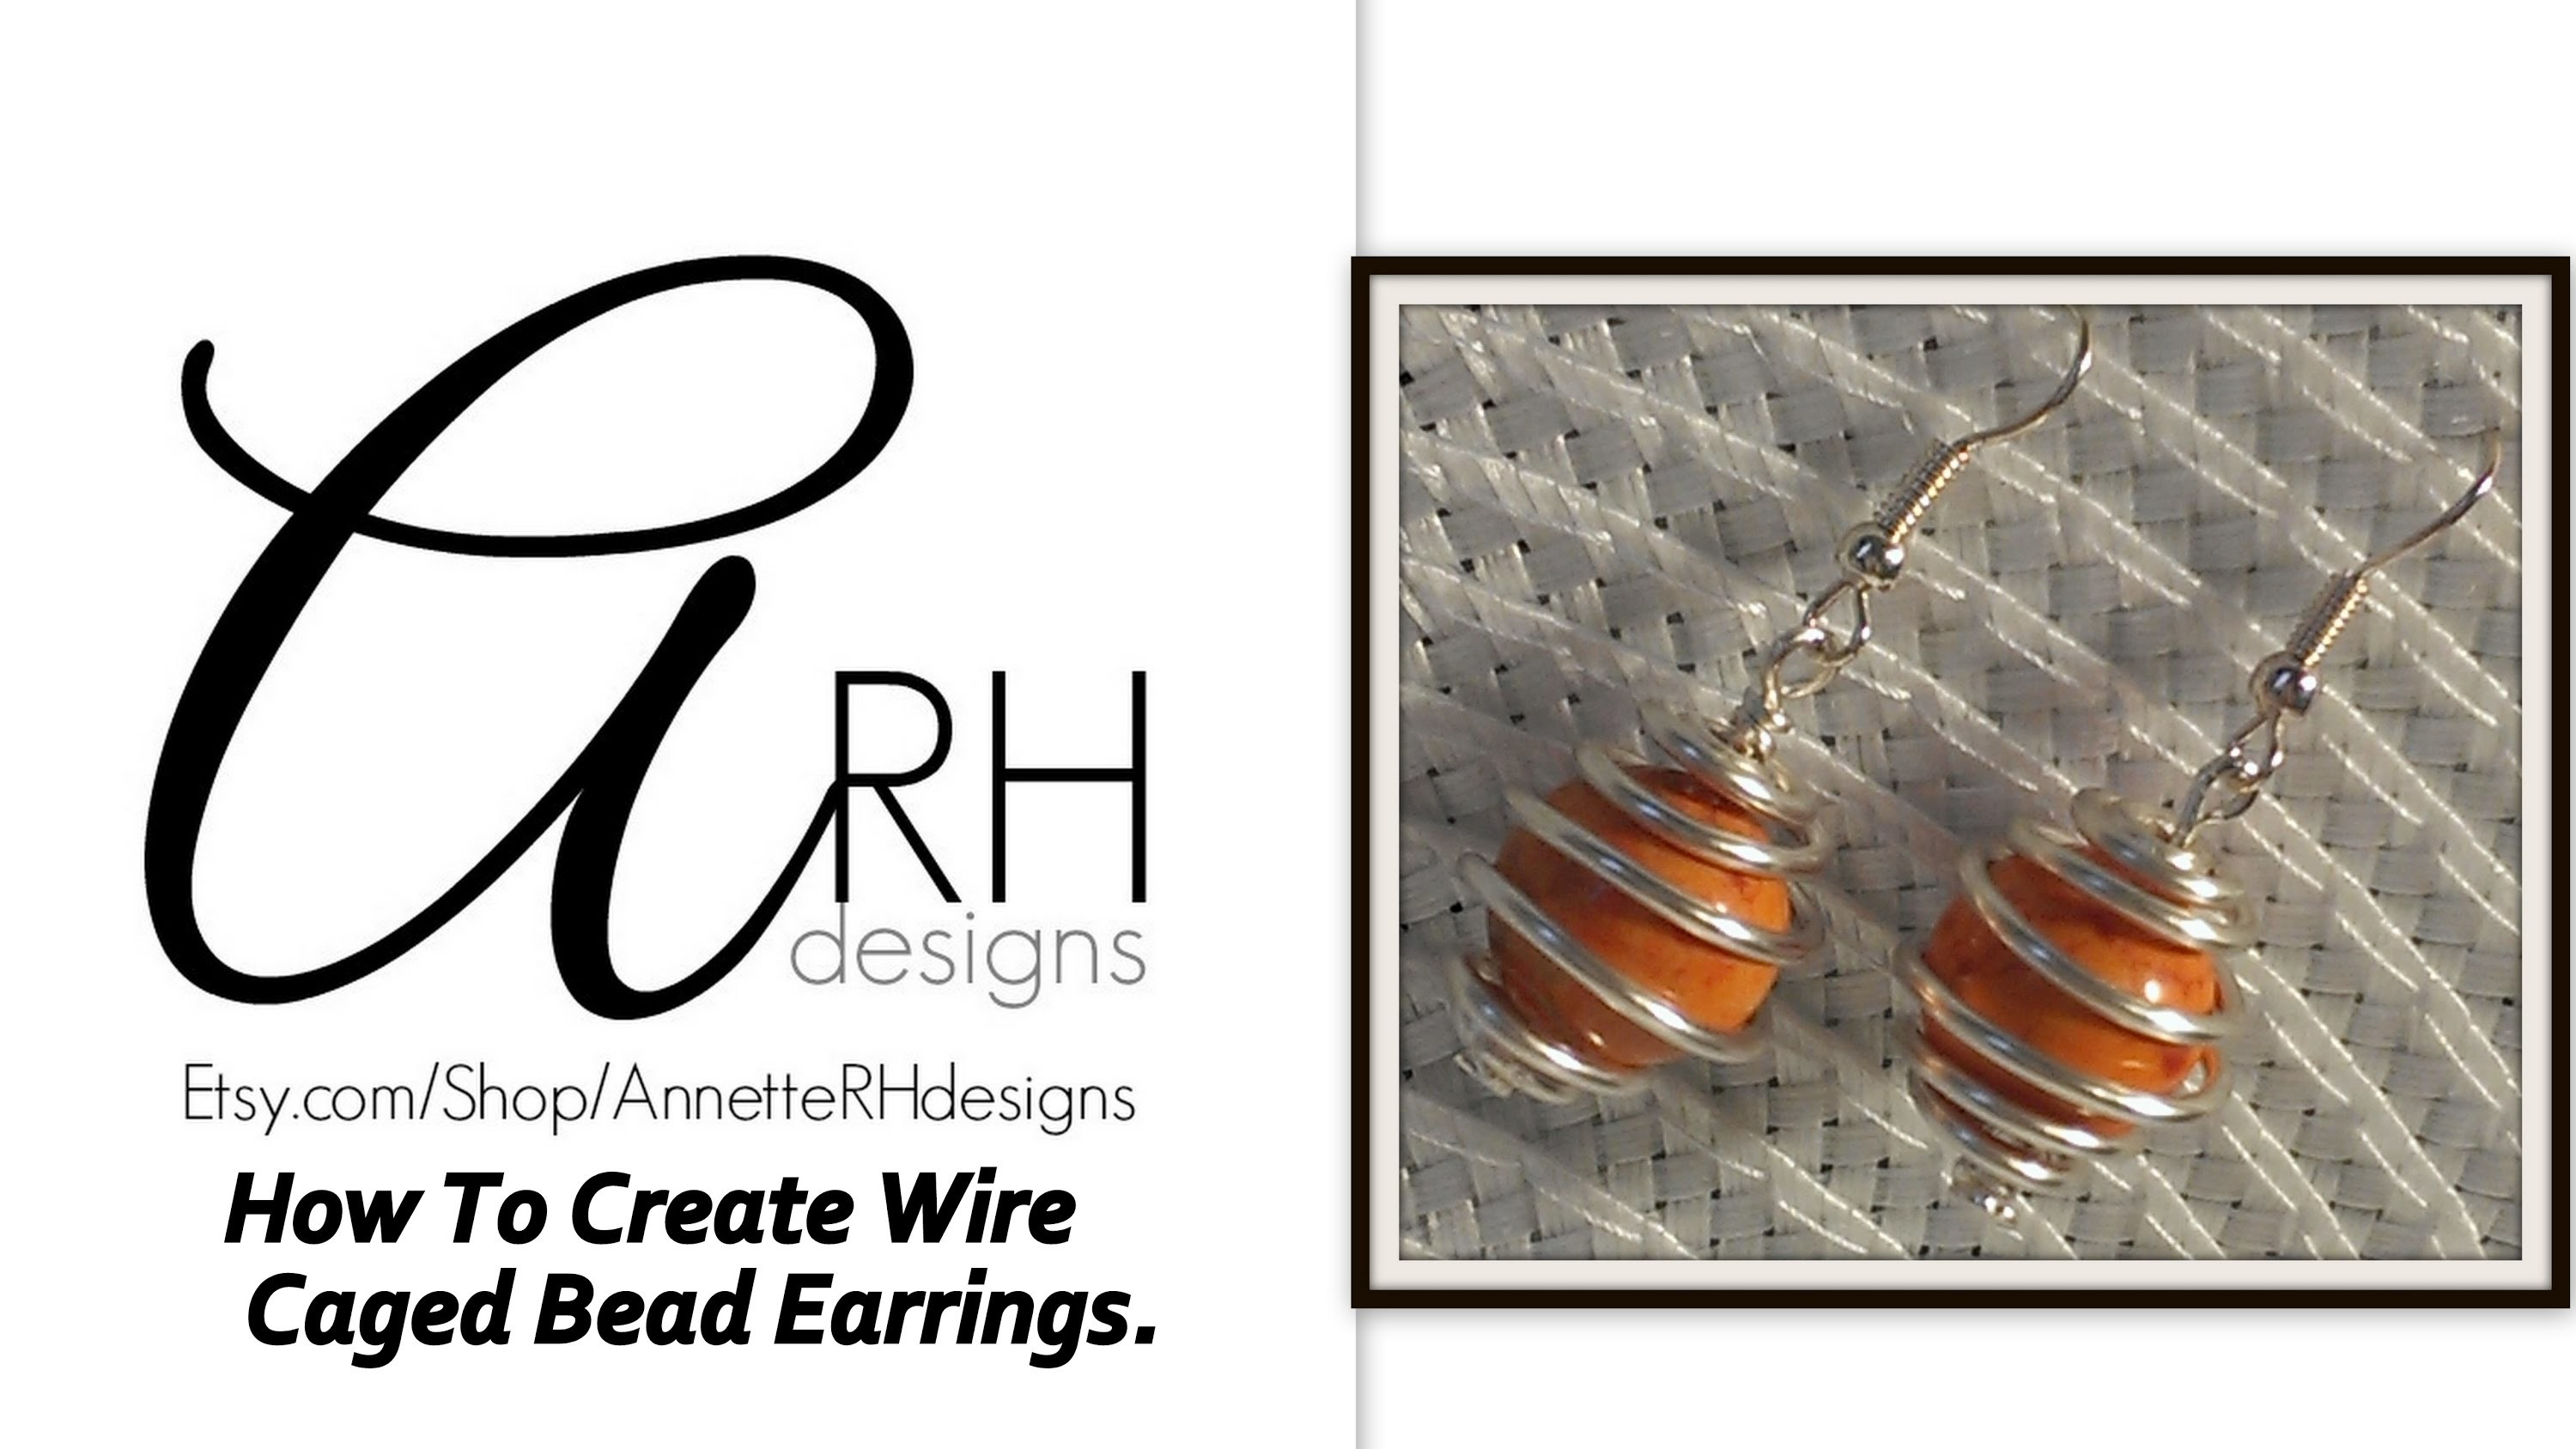 How To Create Wire Caged Bead Earrings.